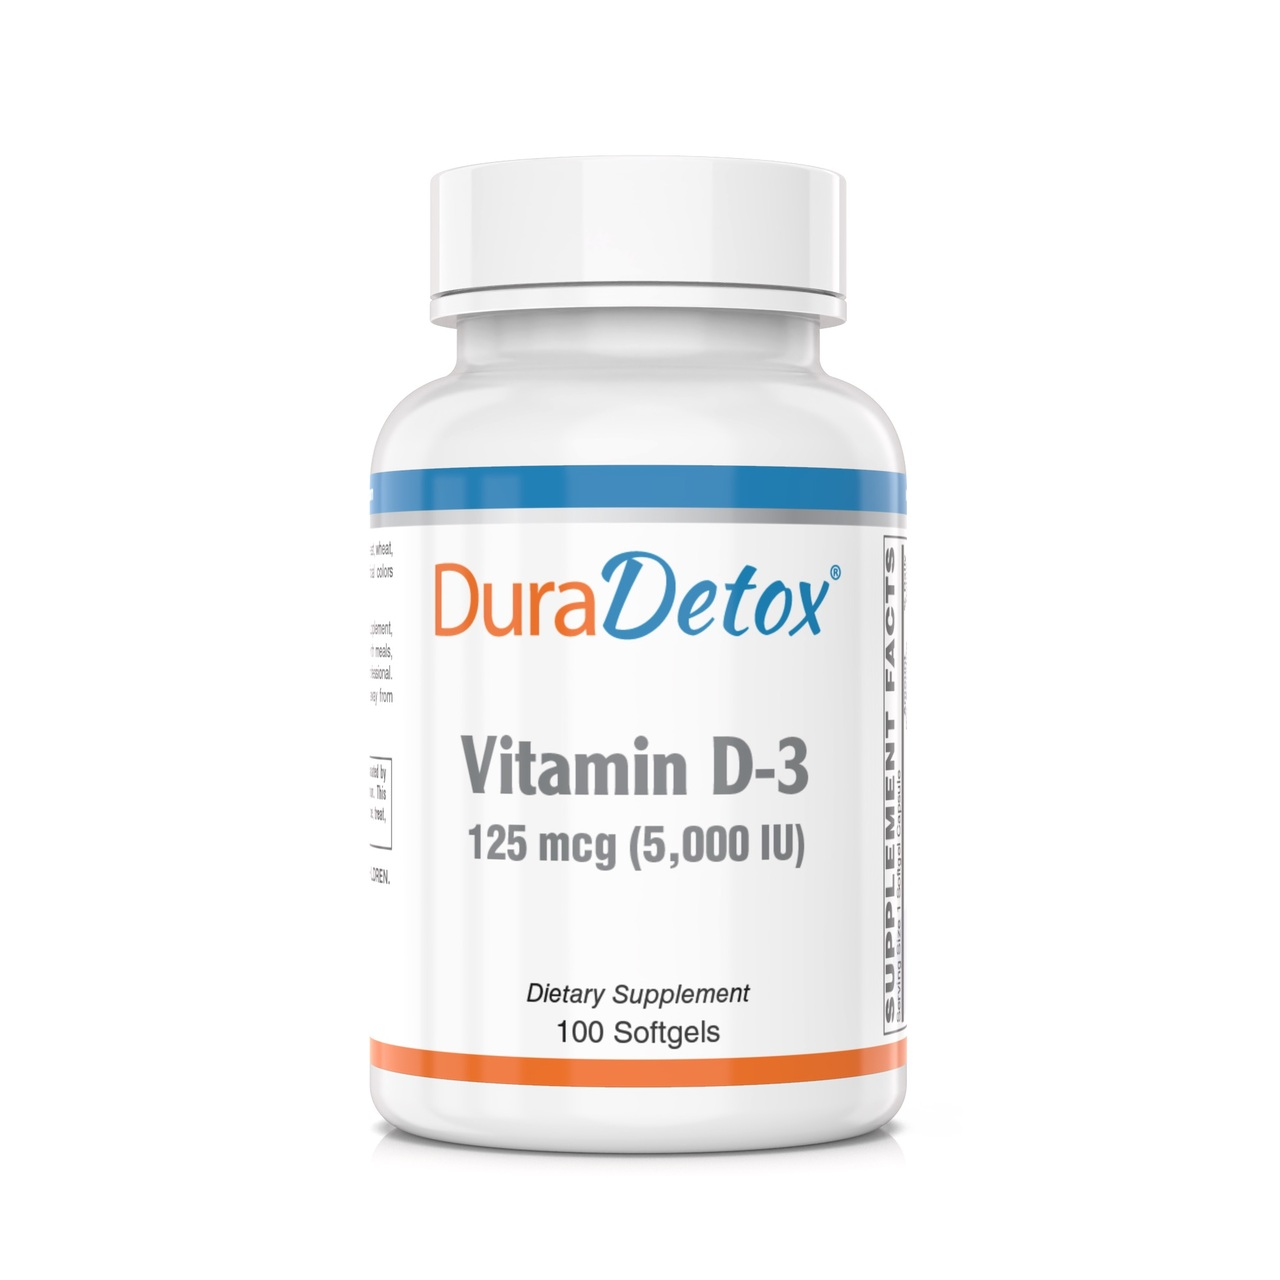 Vitamin D-3 (5,000 IU) for Immune Support and Bone Health. Vitamin D-3 (cholecalciferol), a highly bioavailable form of Vitamin D, in an easy to swallow soft gel.